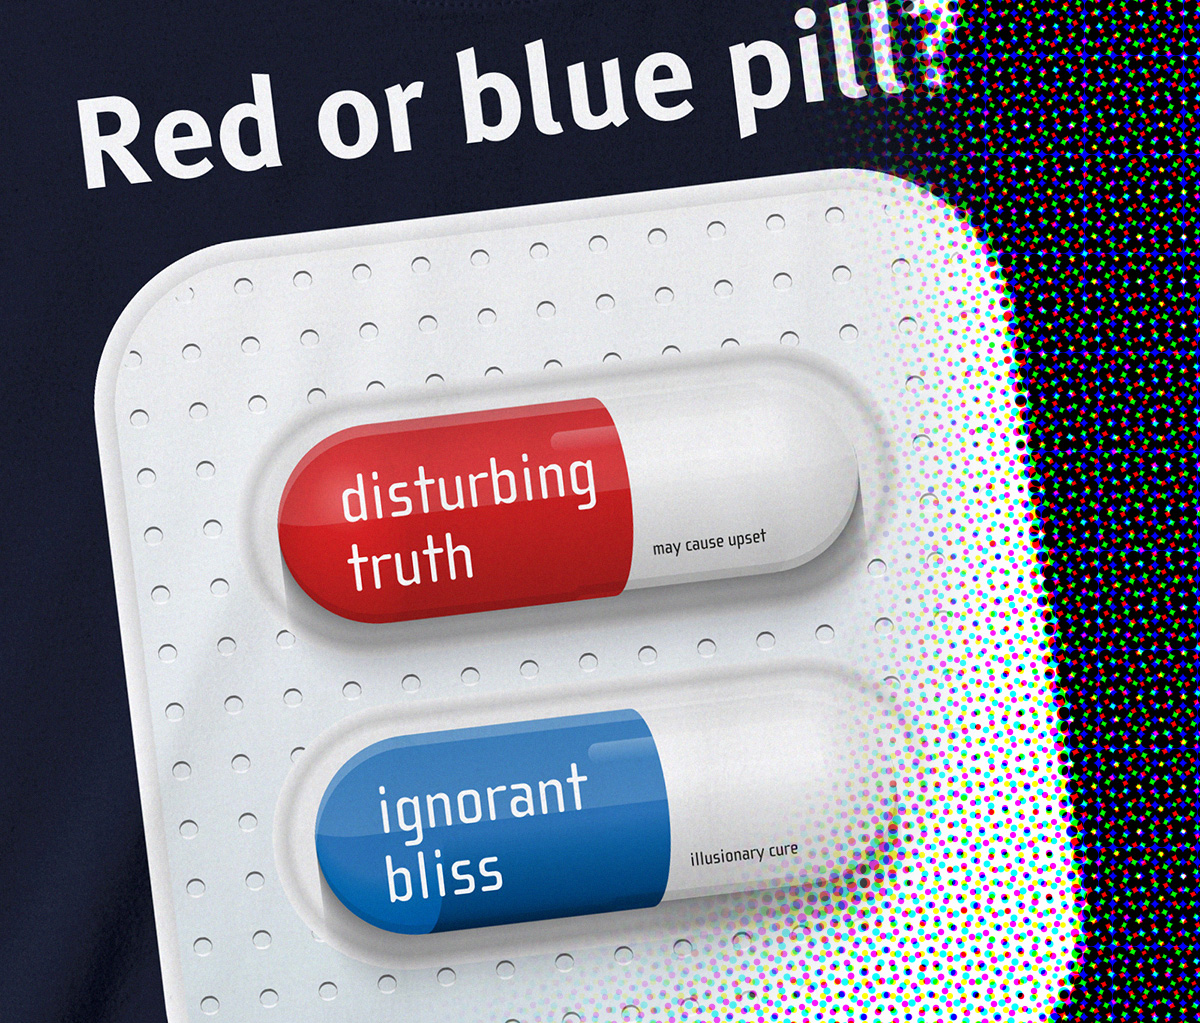 Red or blue pill?